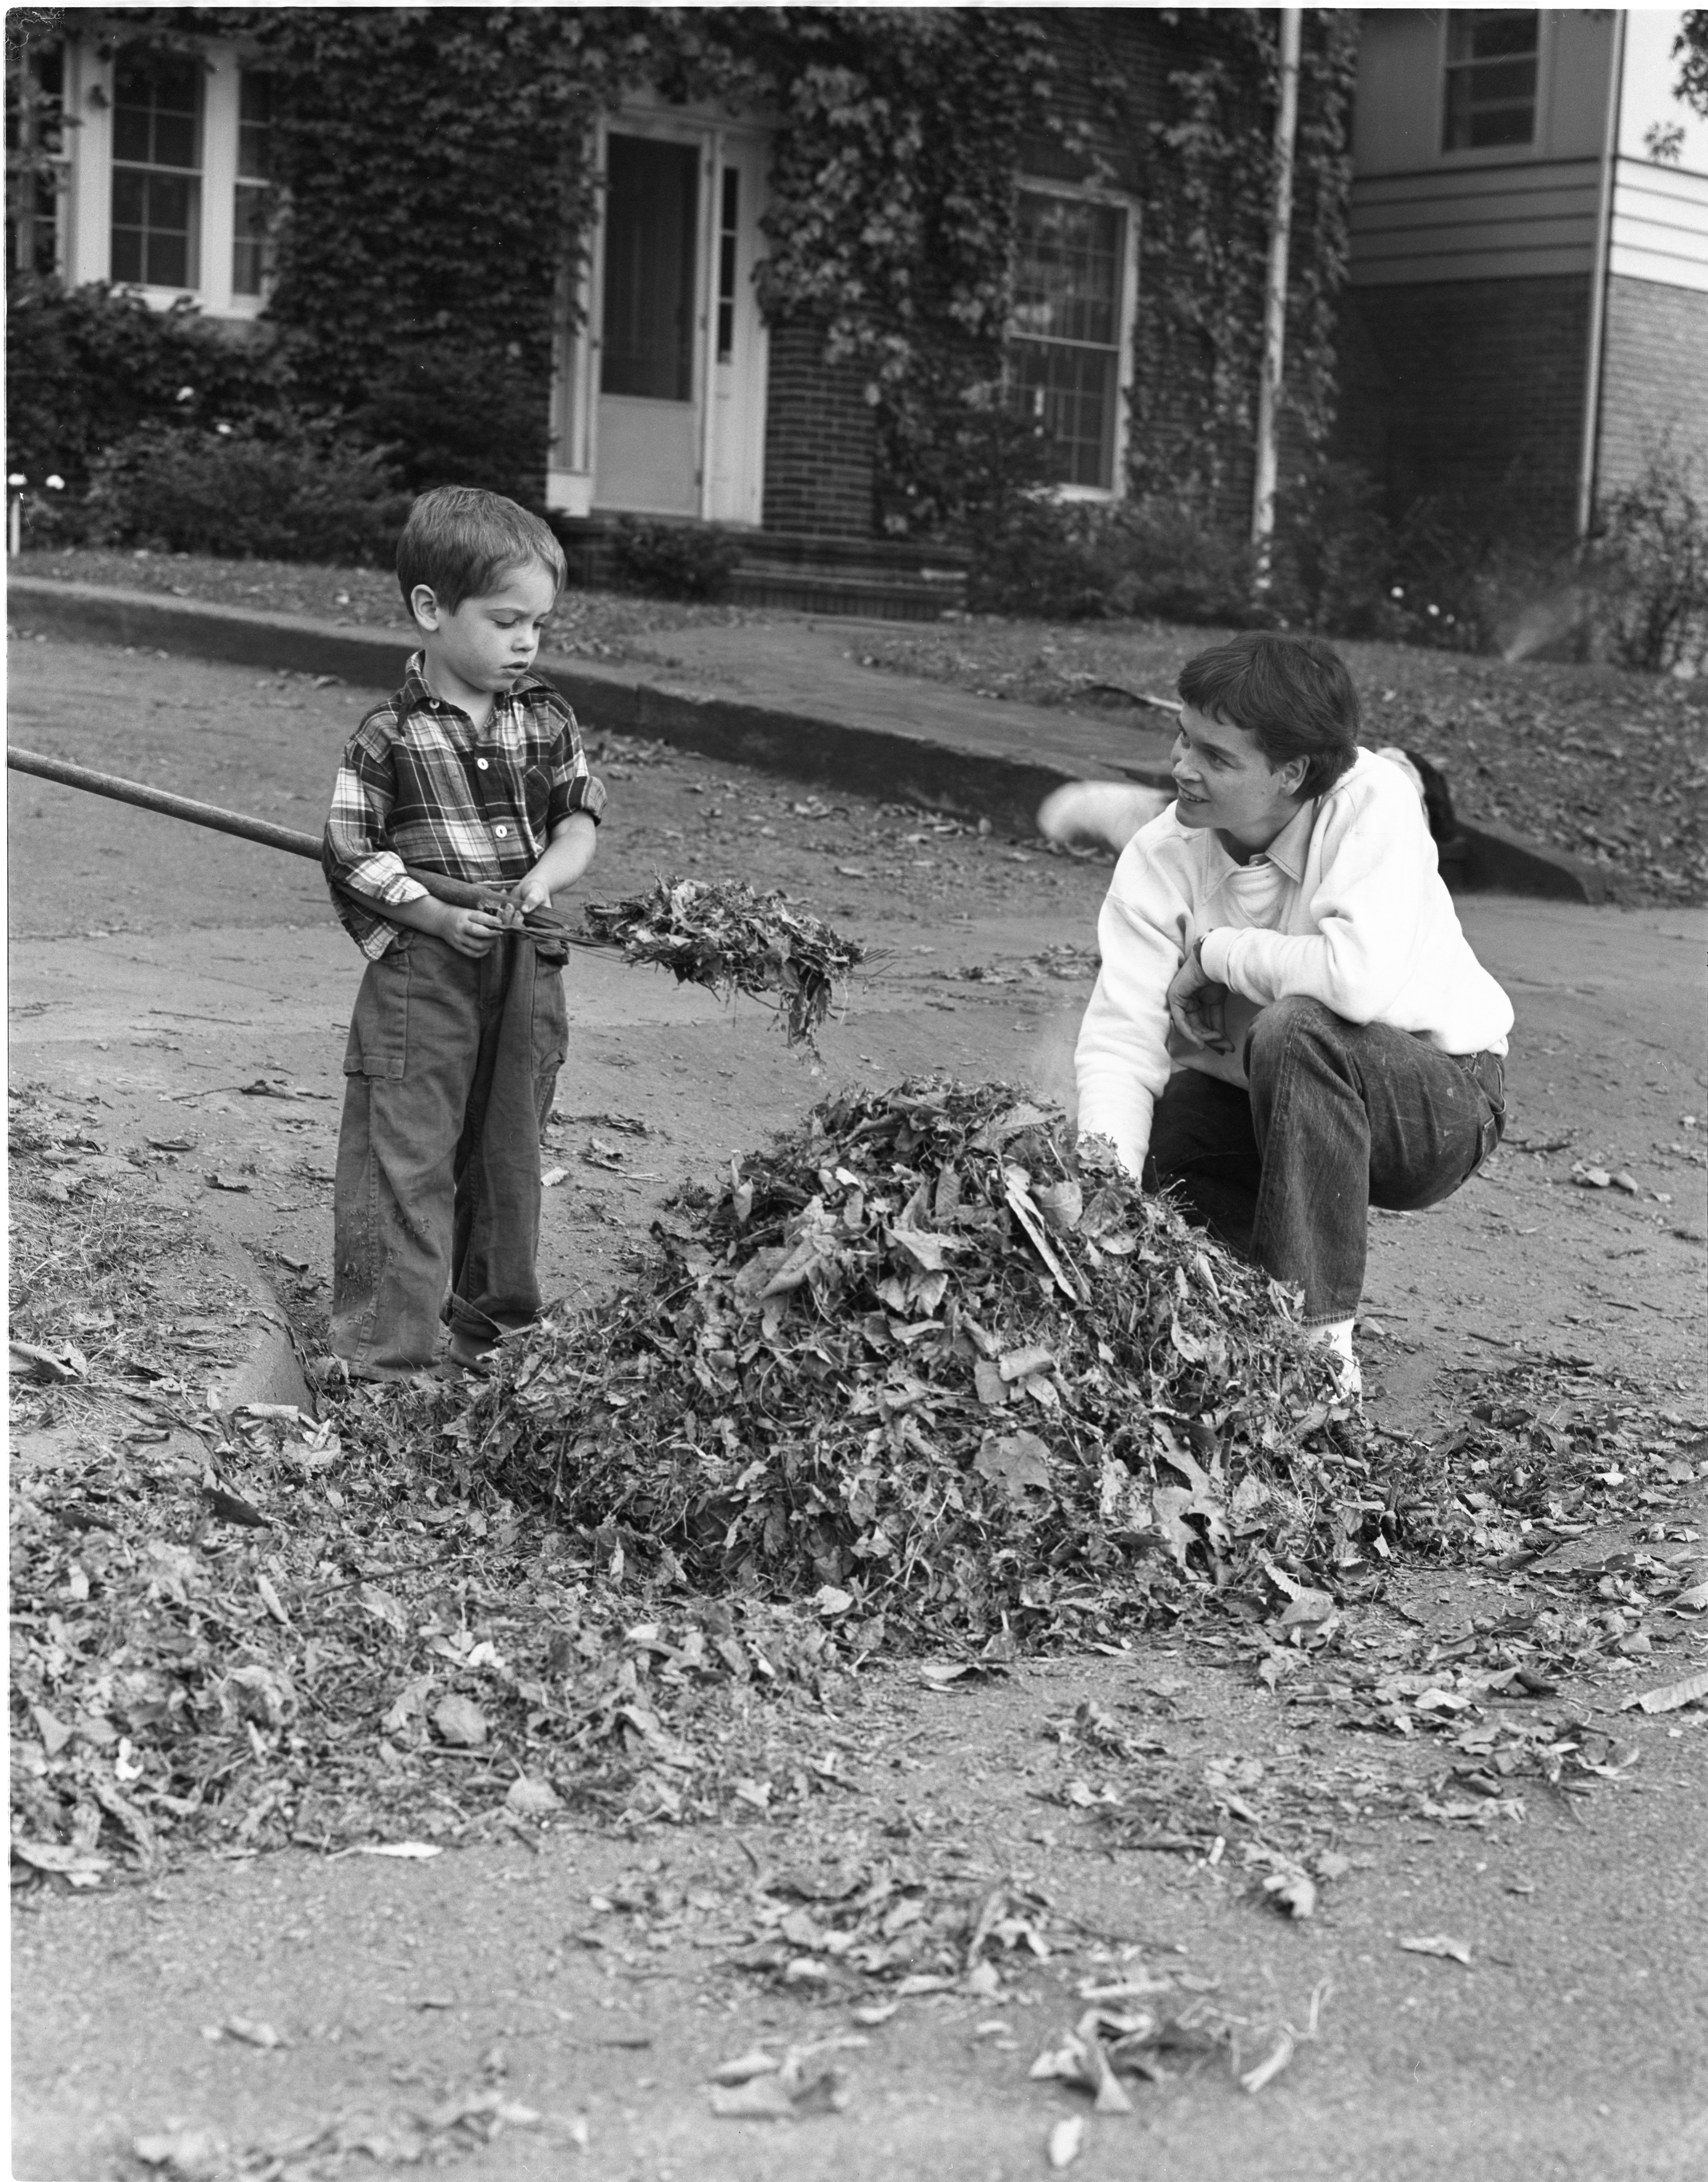 Anne and Benny Ladd Rake Leaves, September 1955 image